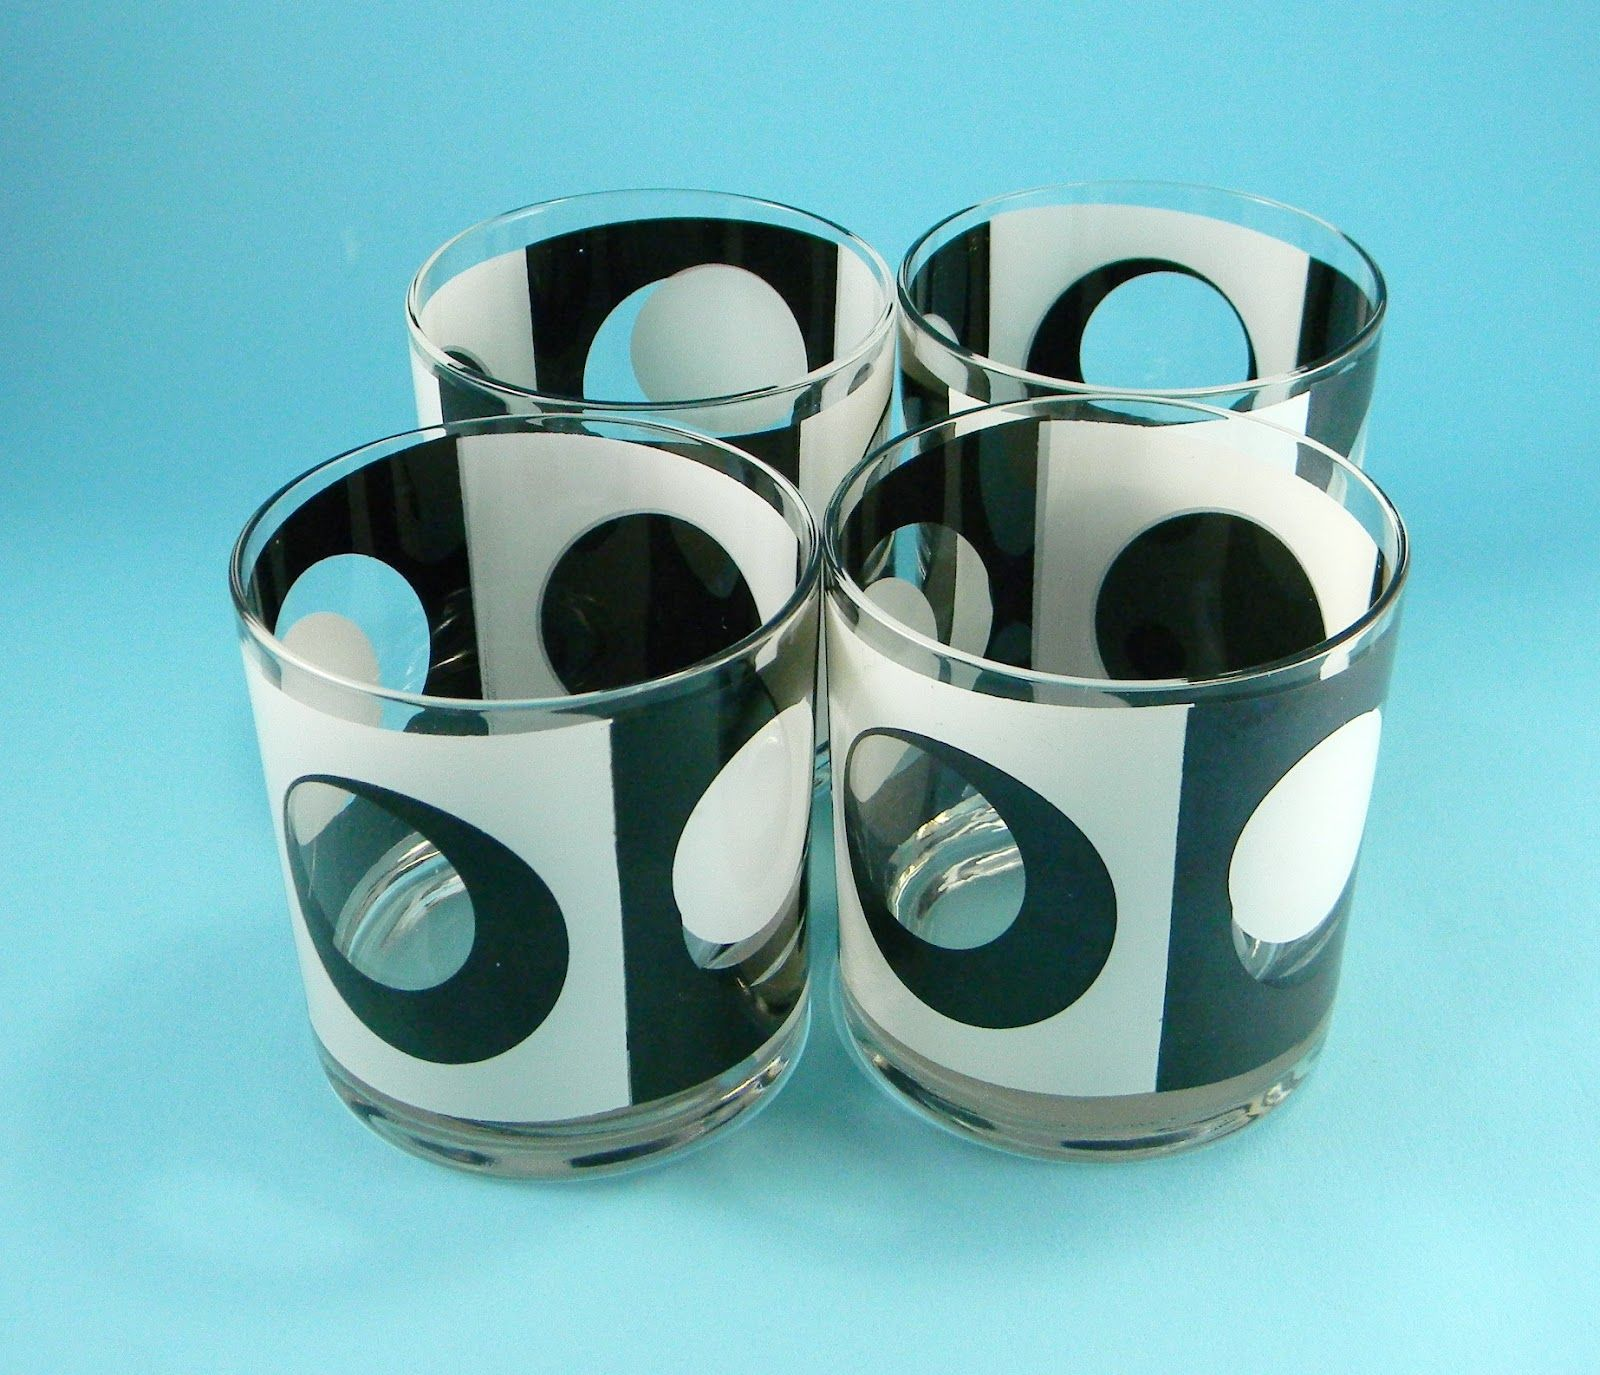 Georges Briard Black U0026 White Rocks Glasses. 1960s Barware Mid Century  Beauties. Mad Men